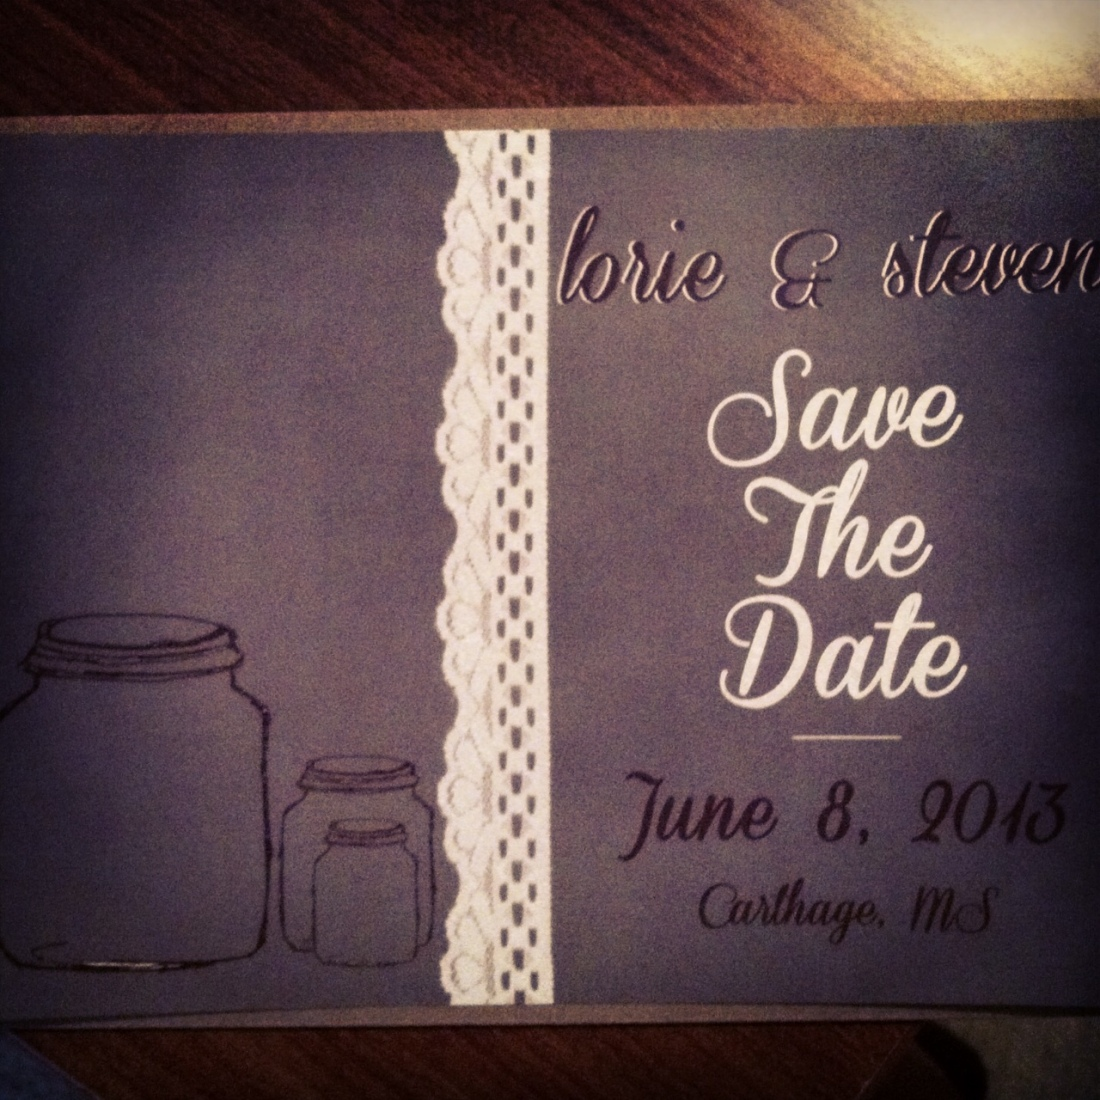 Lori and Steven's save the date postcards came out lovely#savethedatest lovely#savethedates#weddings #wedd